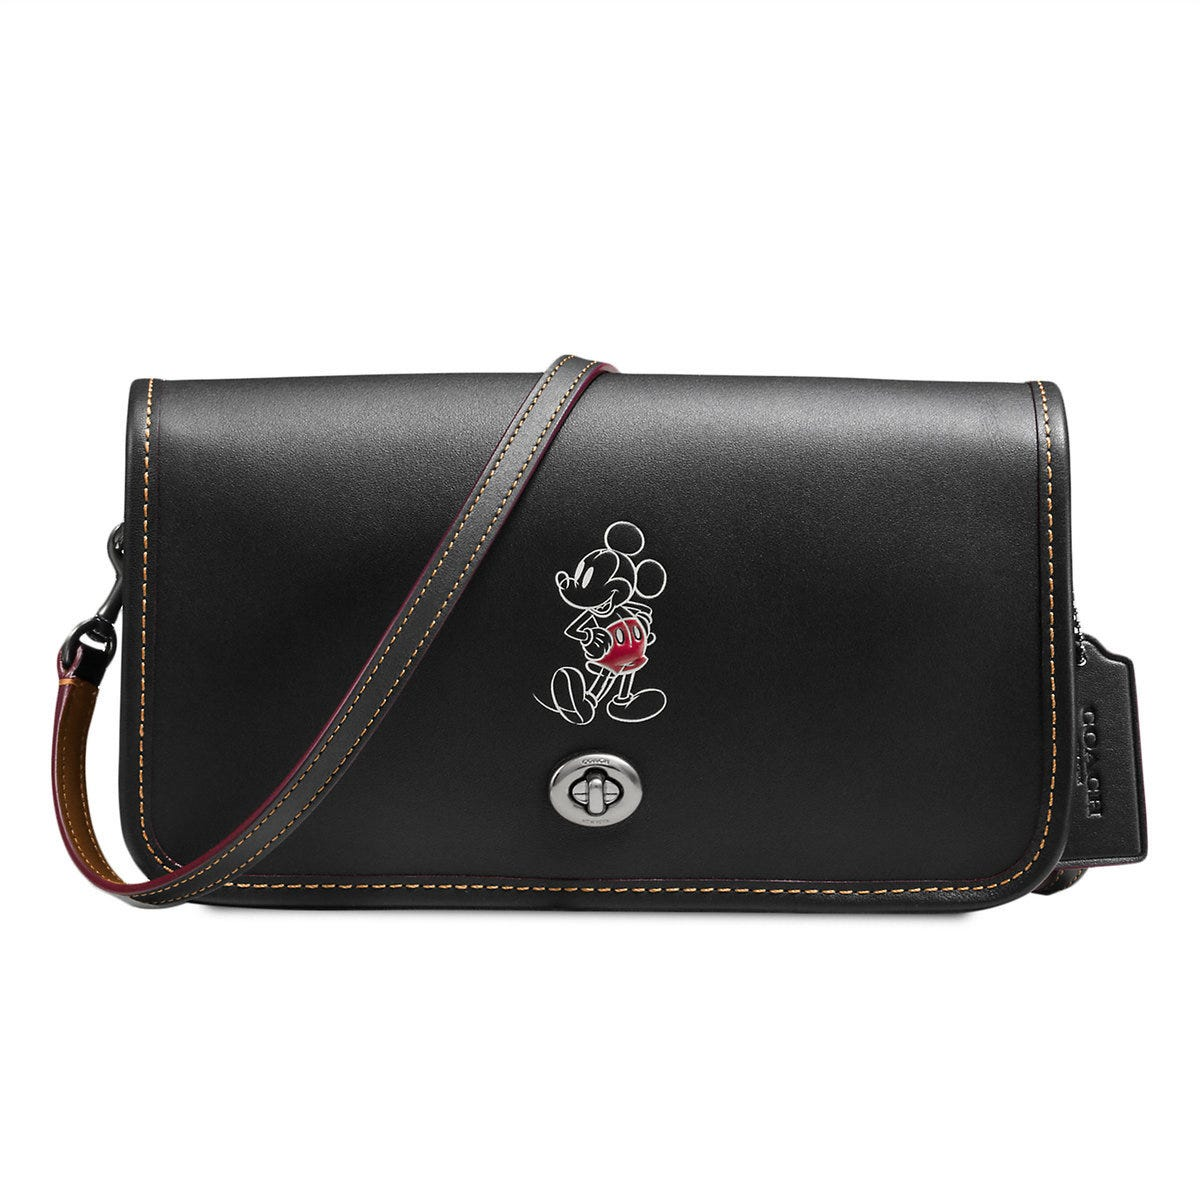 2ed066a774ec Coach New Mickey Mouse Bags Limited Edition Purses